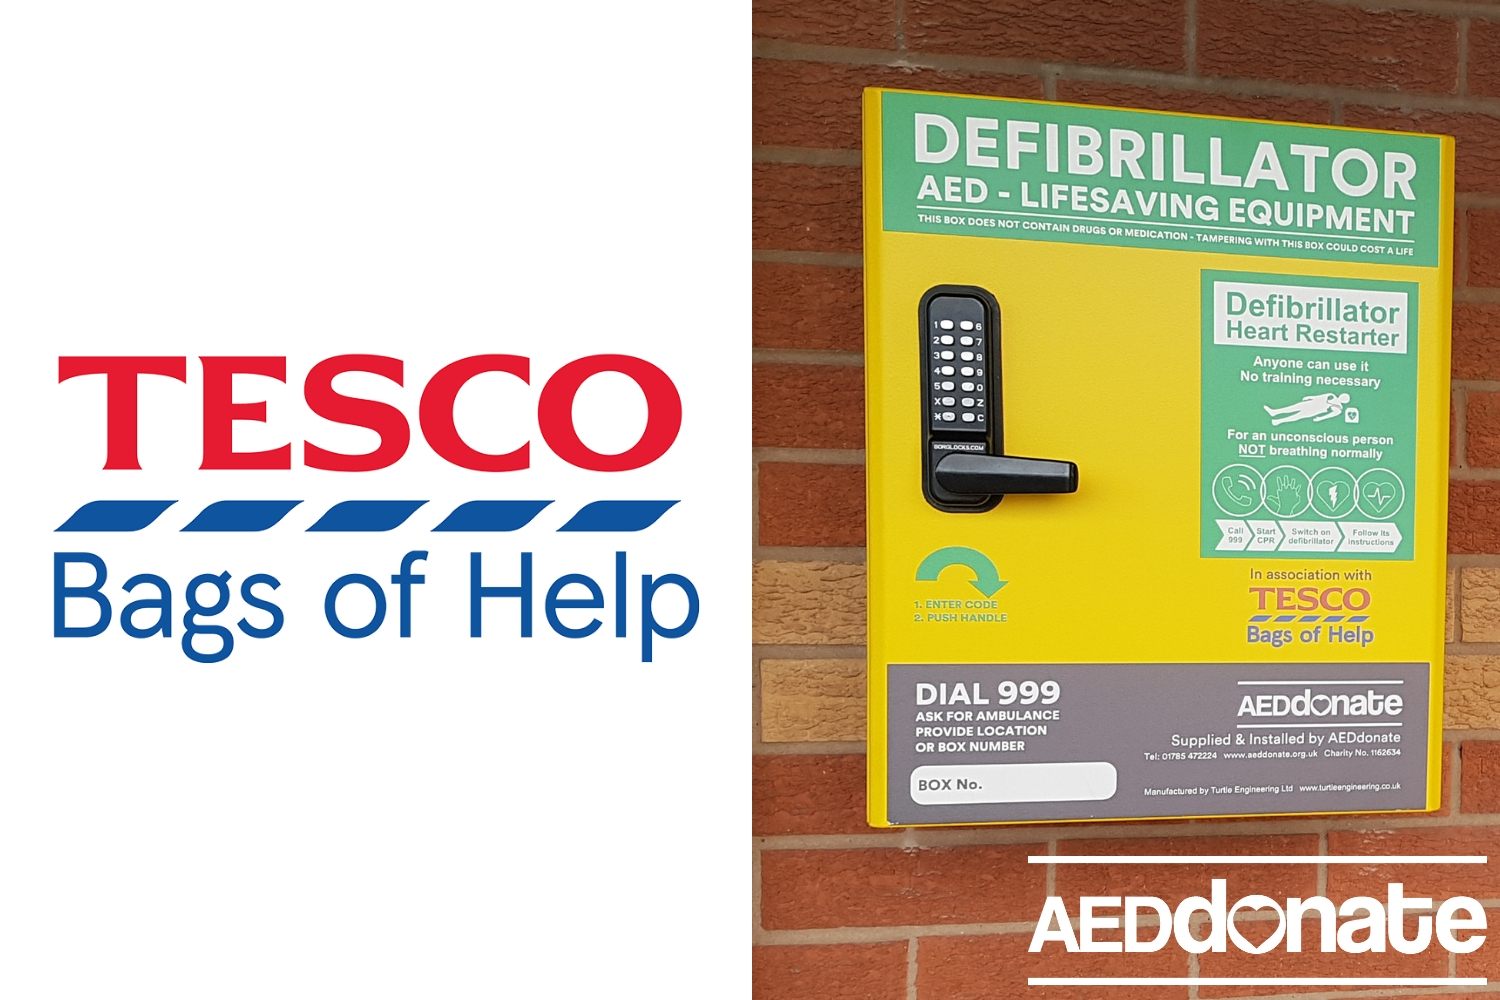 Bardon Hill AED benefits all